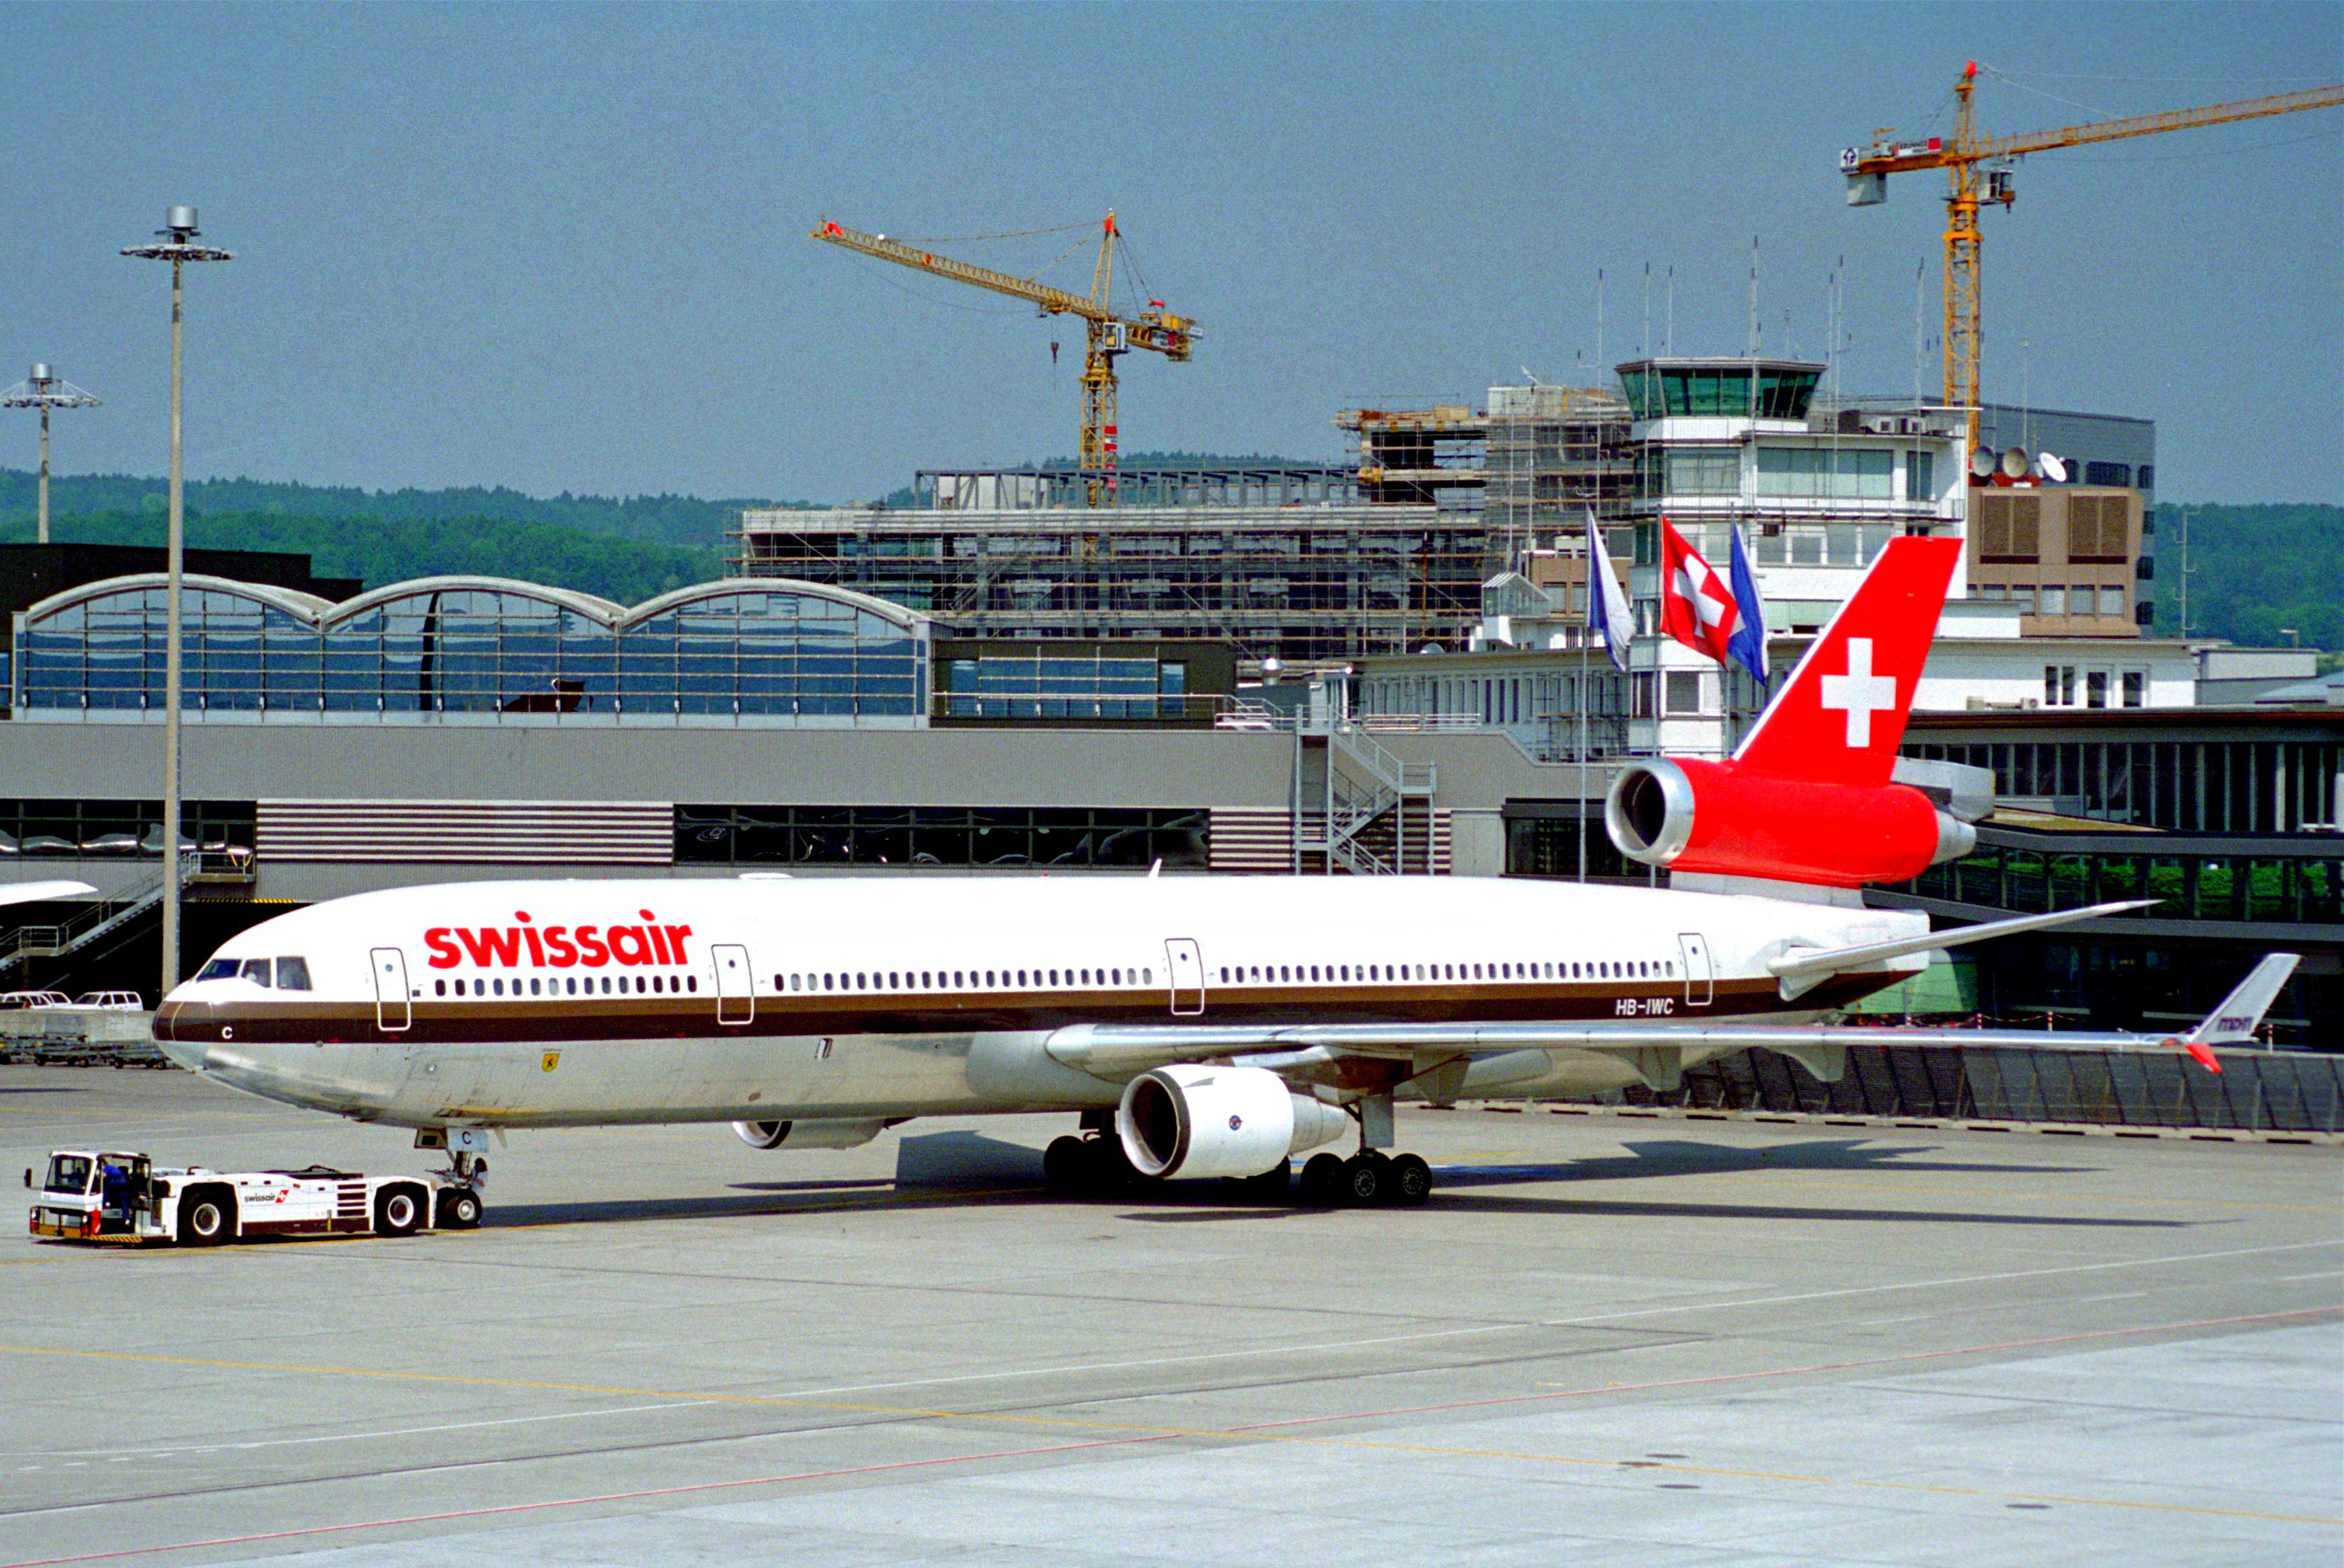 Swissair Wikipedia